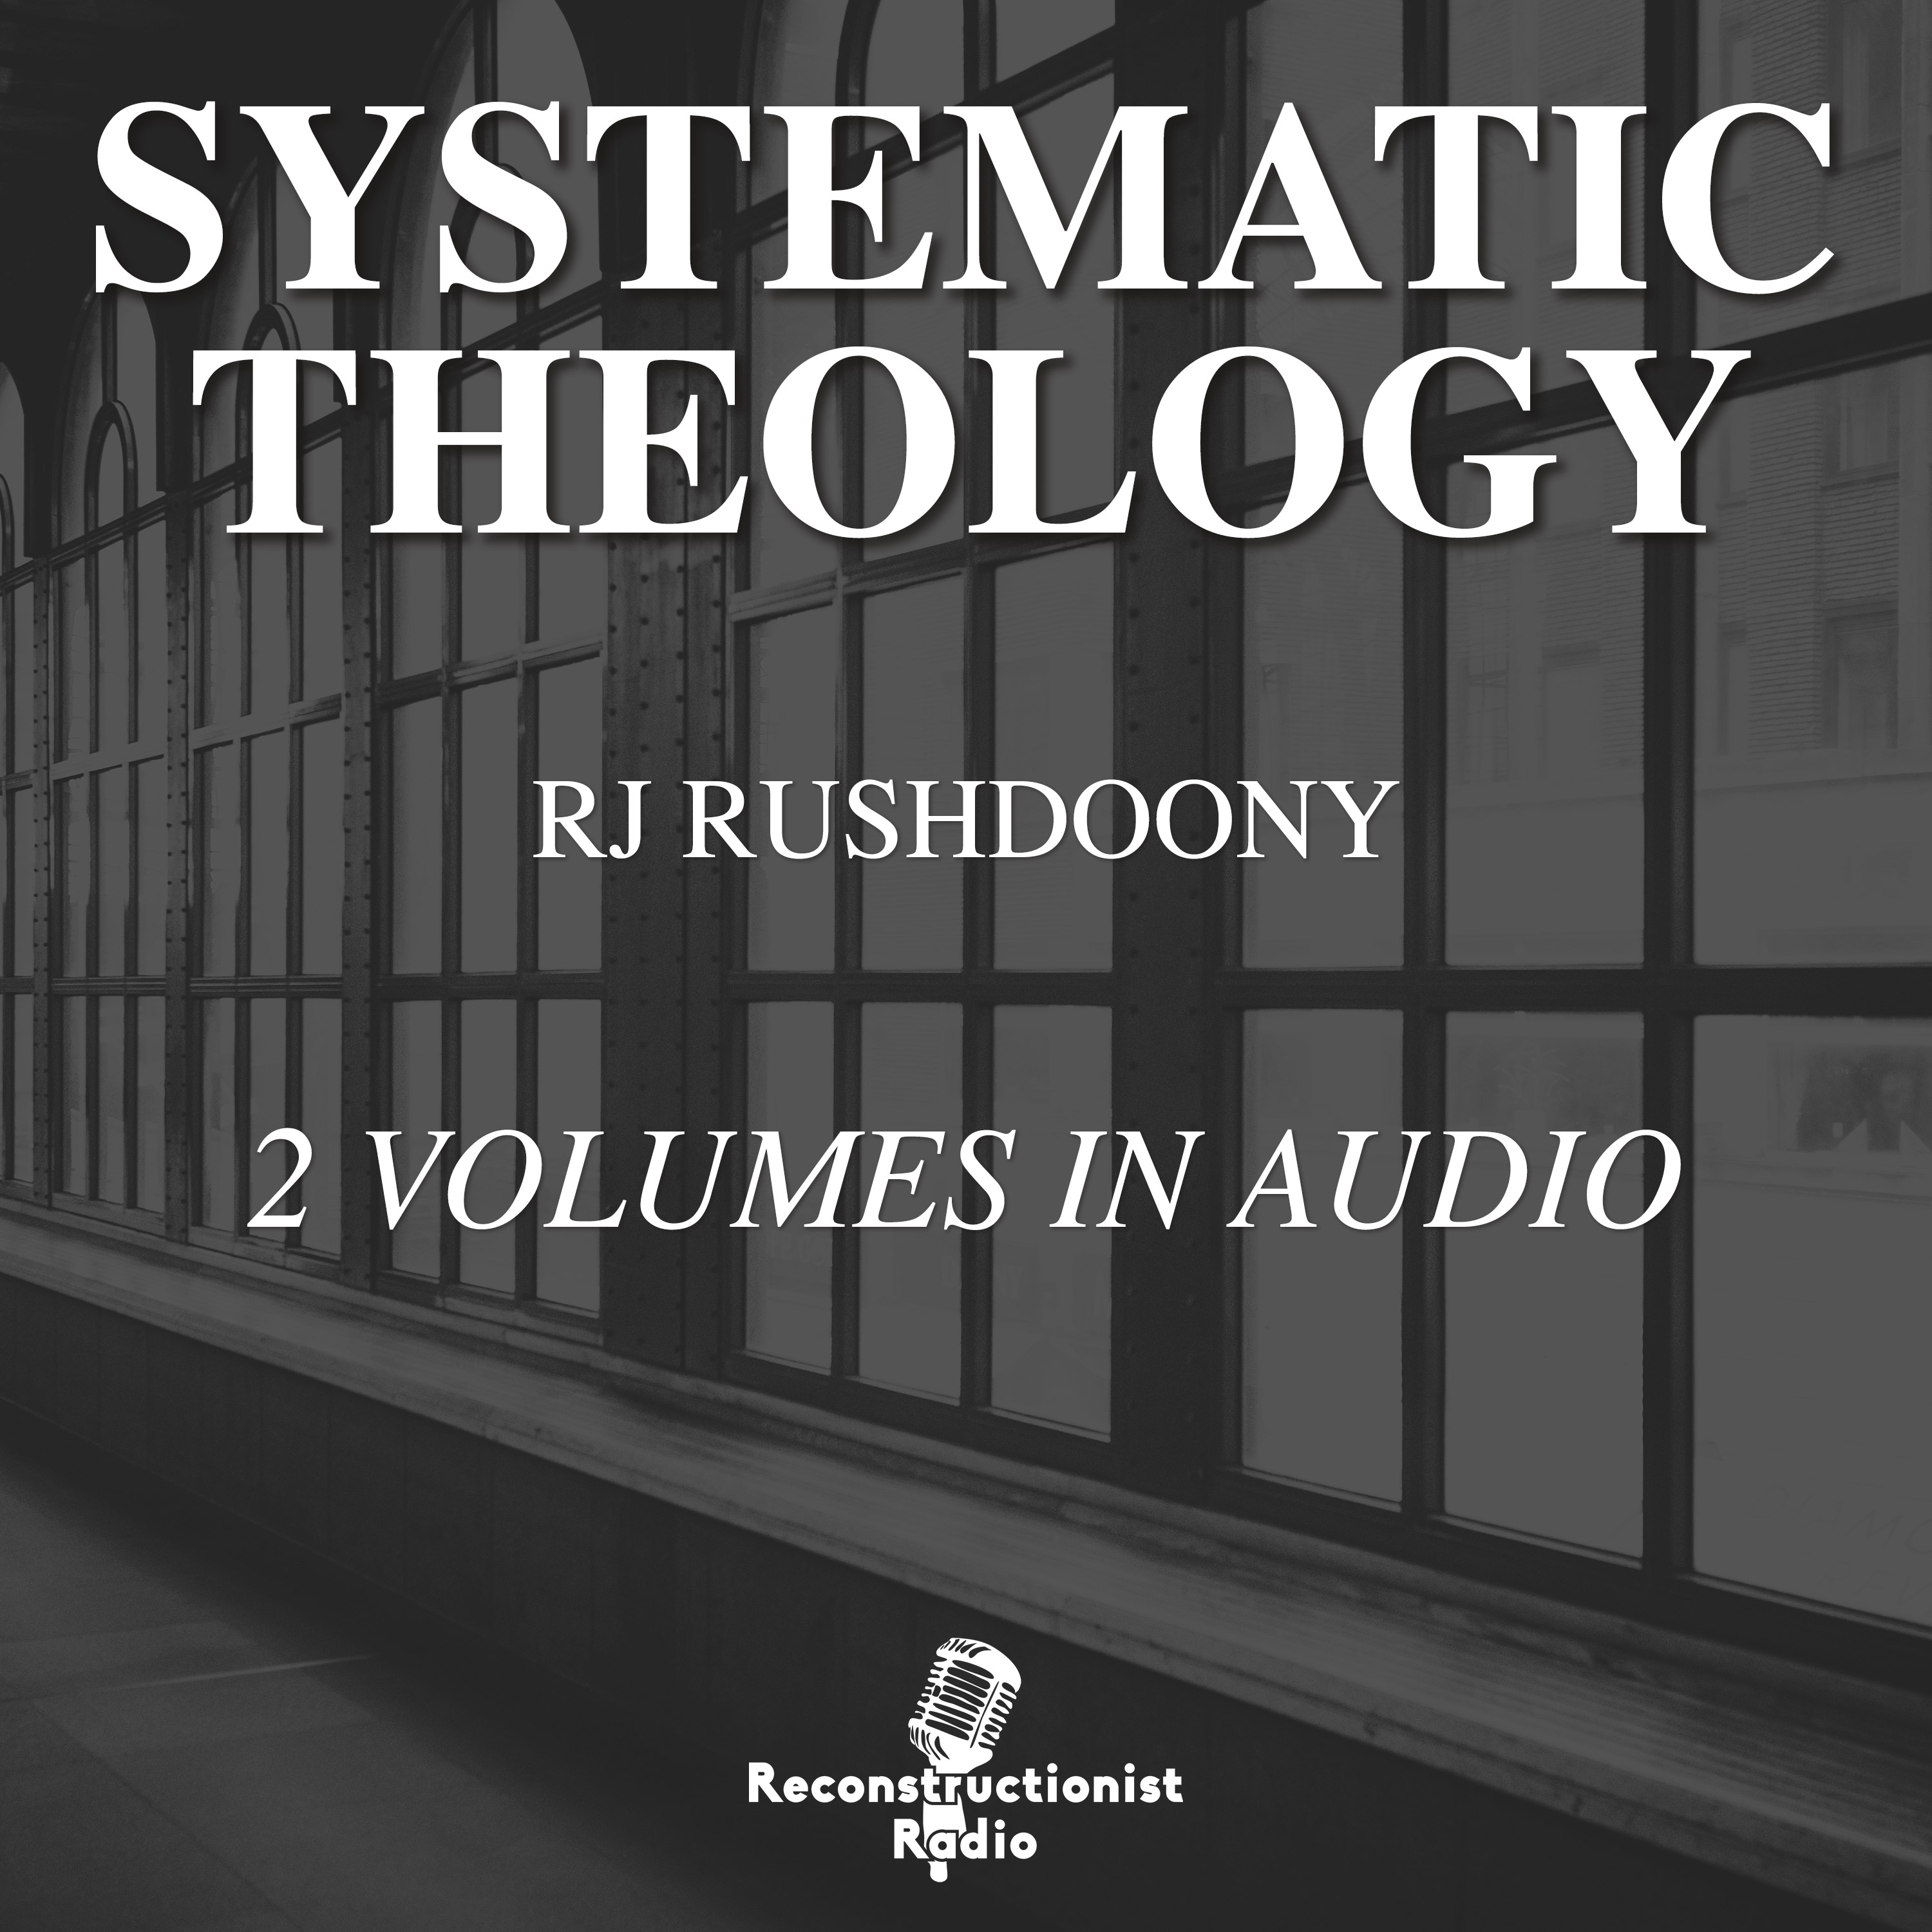 Systematic Theology by RJ Rushdoony | Reconstructionist Radio Reformed Podcast and Audiobook Network